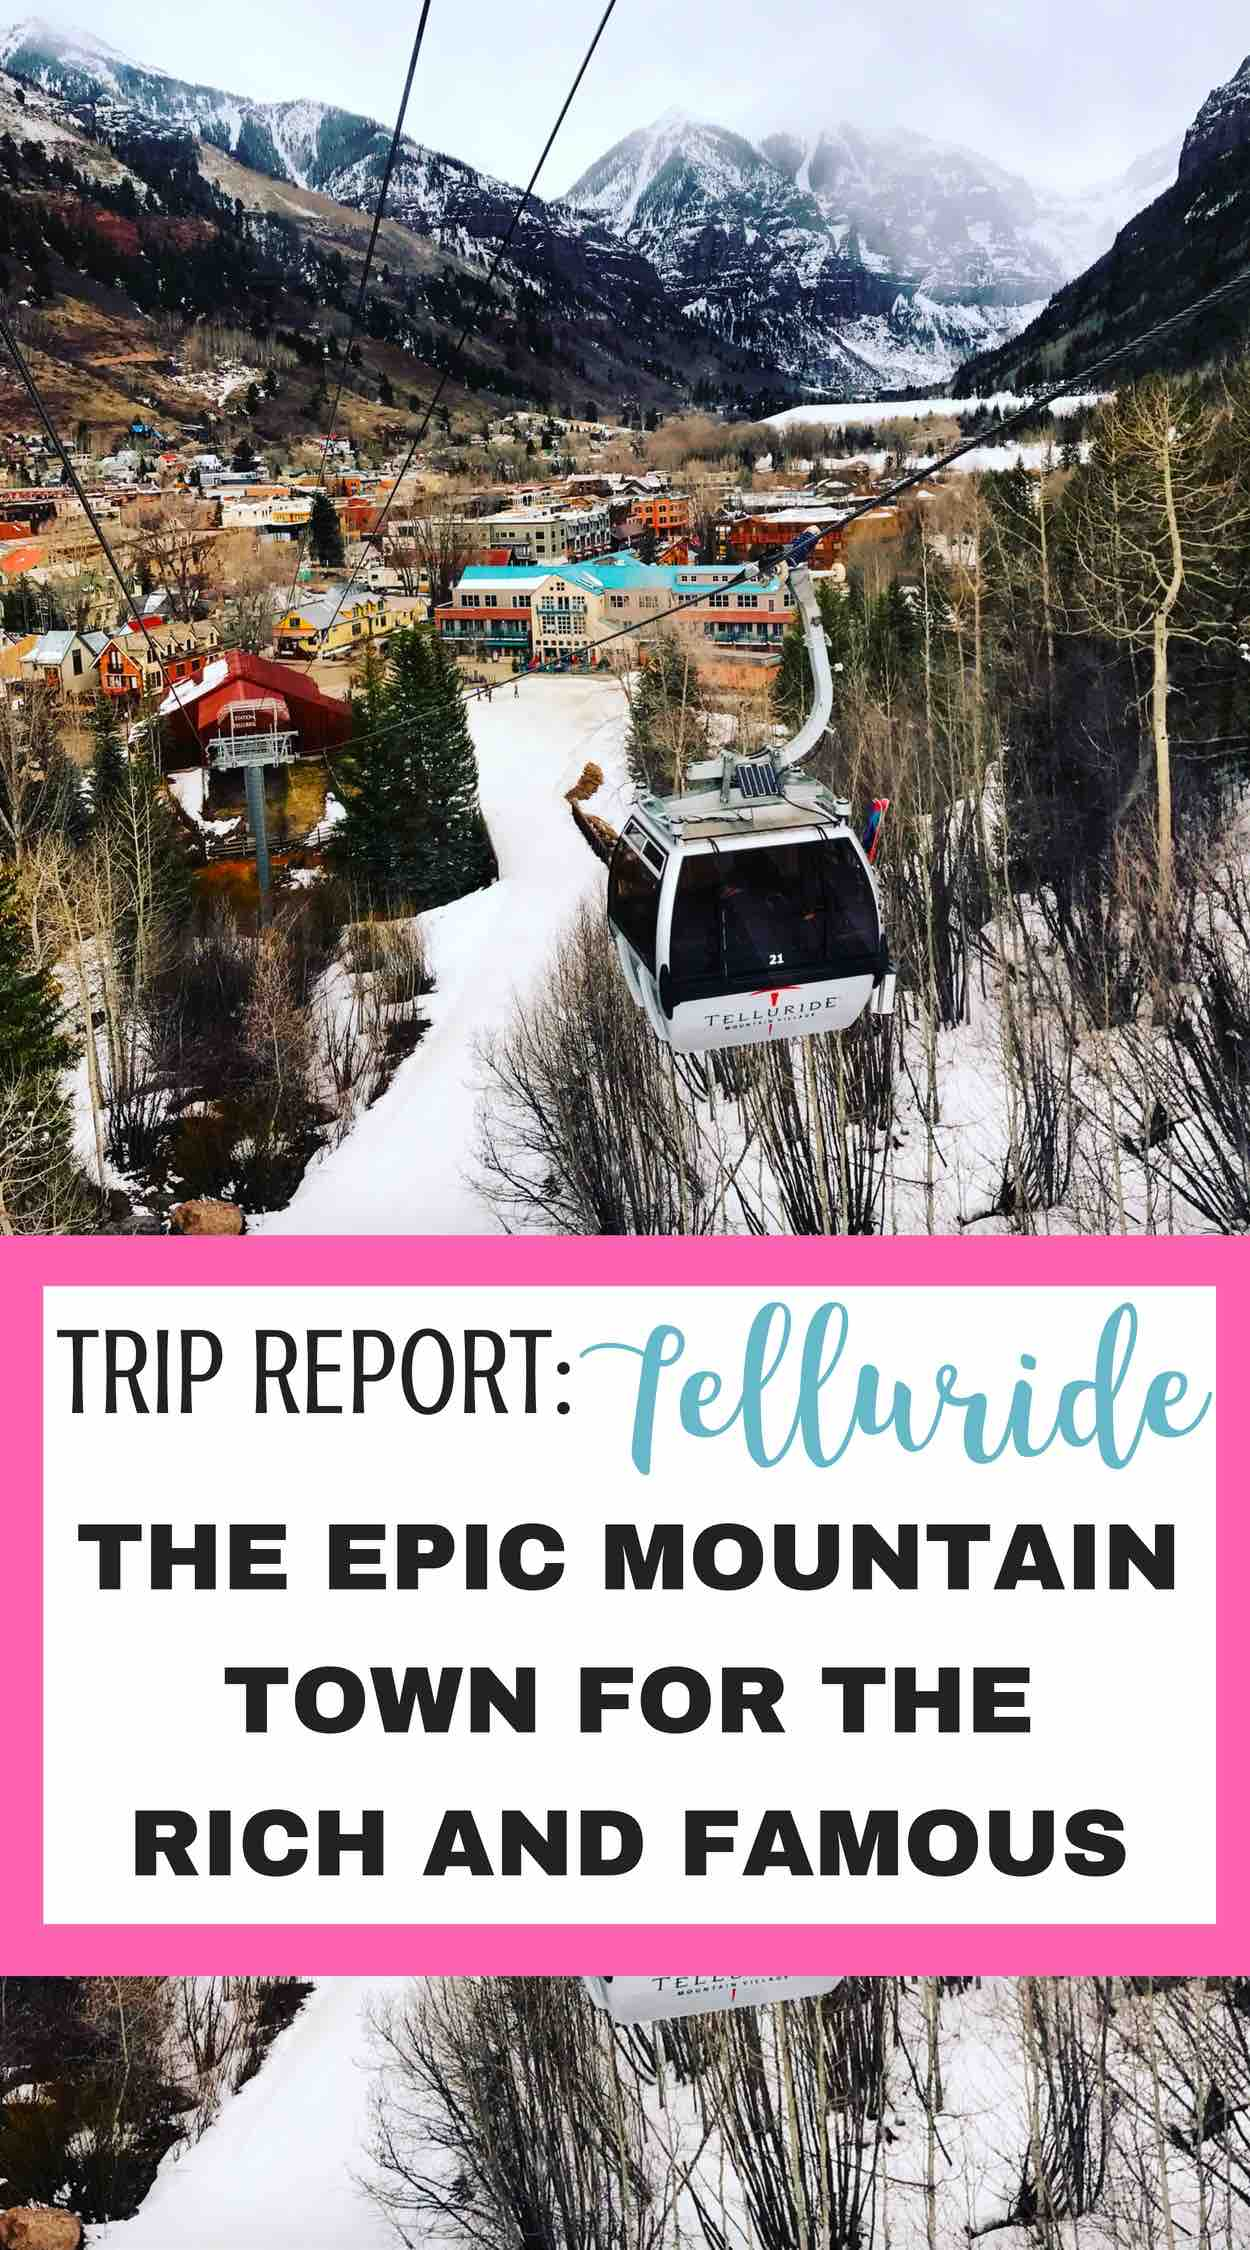 I've always wanted to go to Telluride! Thanks for writing this Telluride Trip Report!